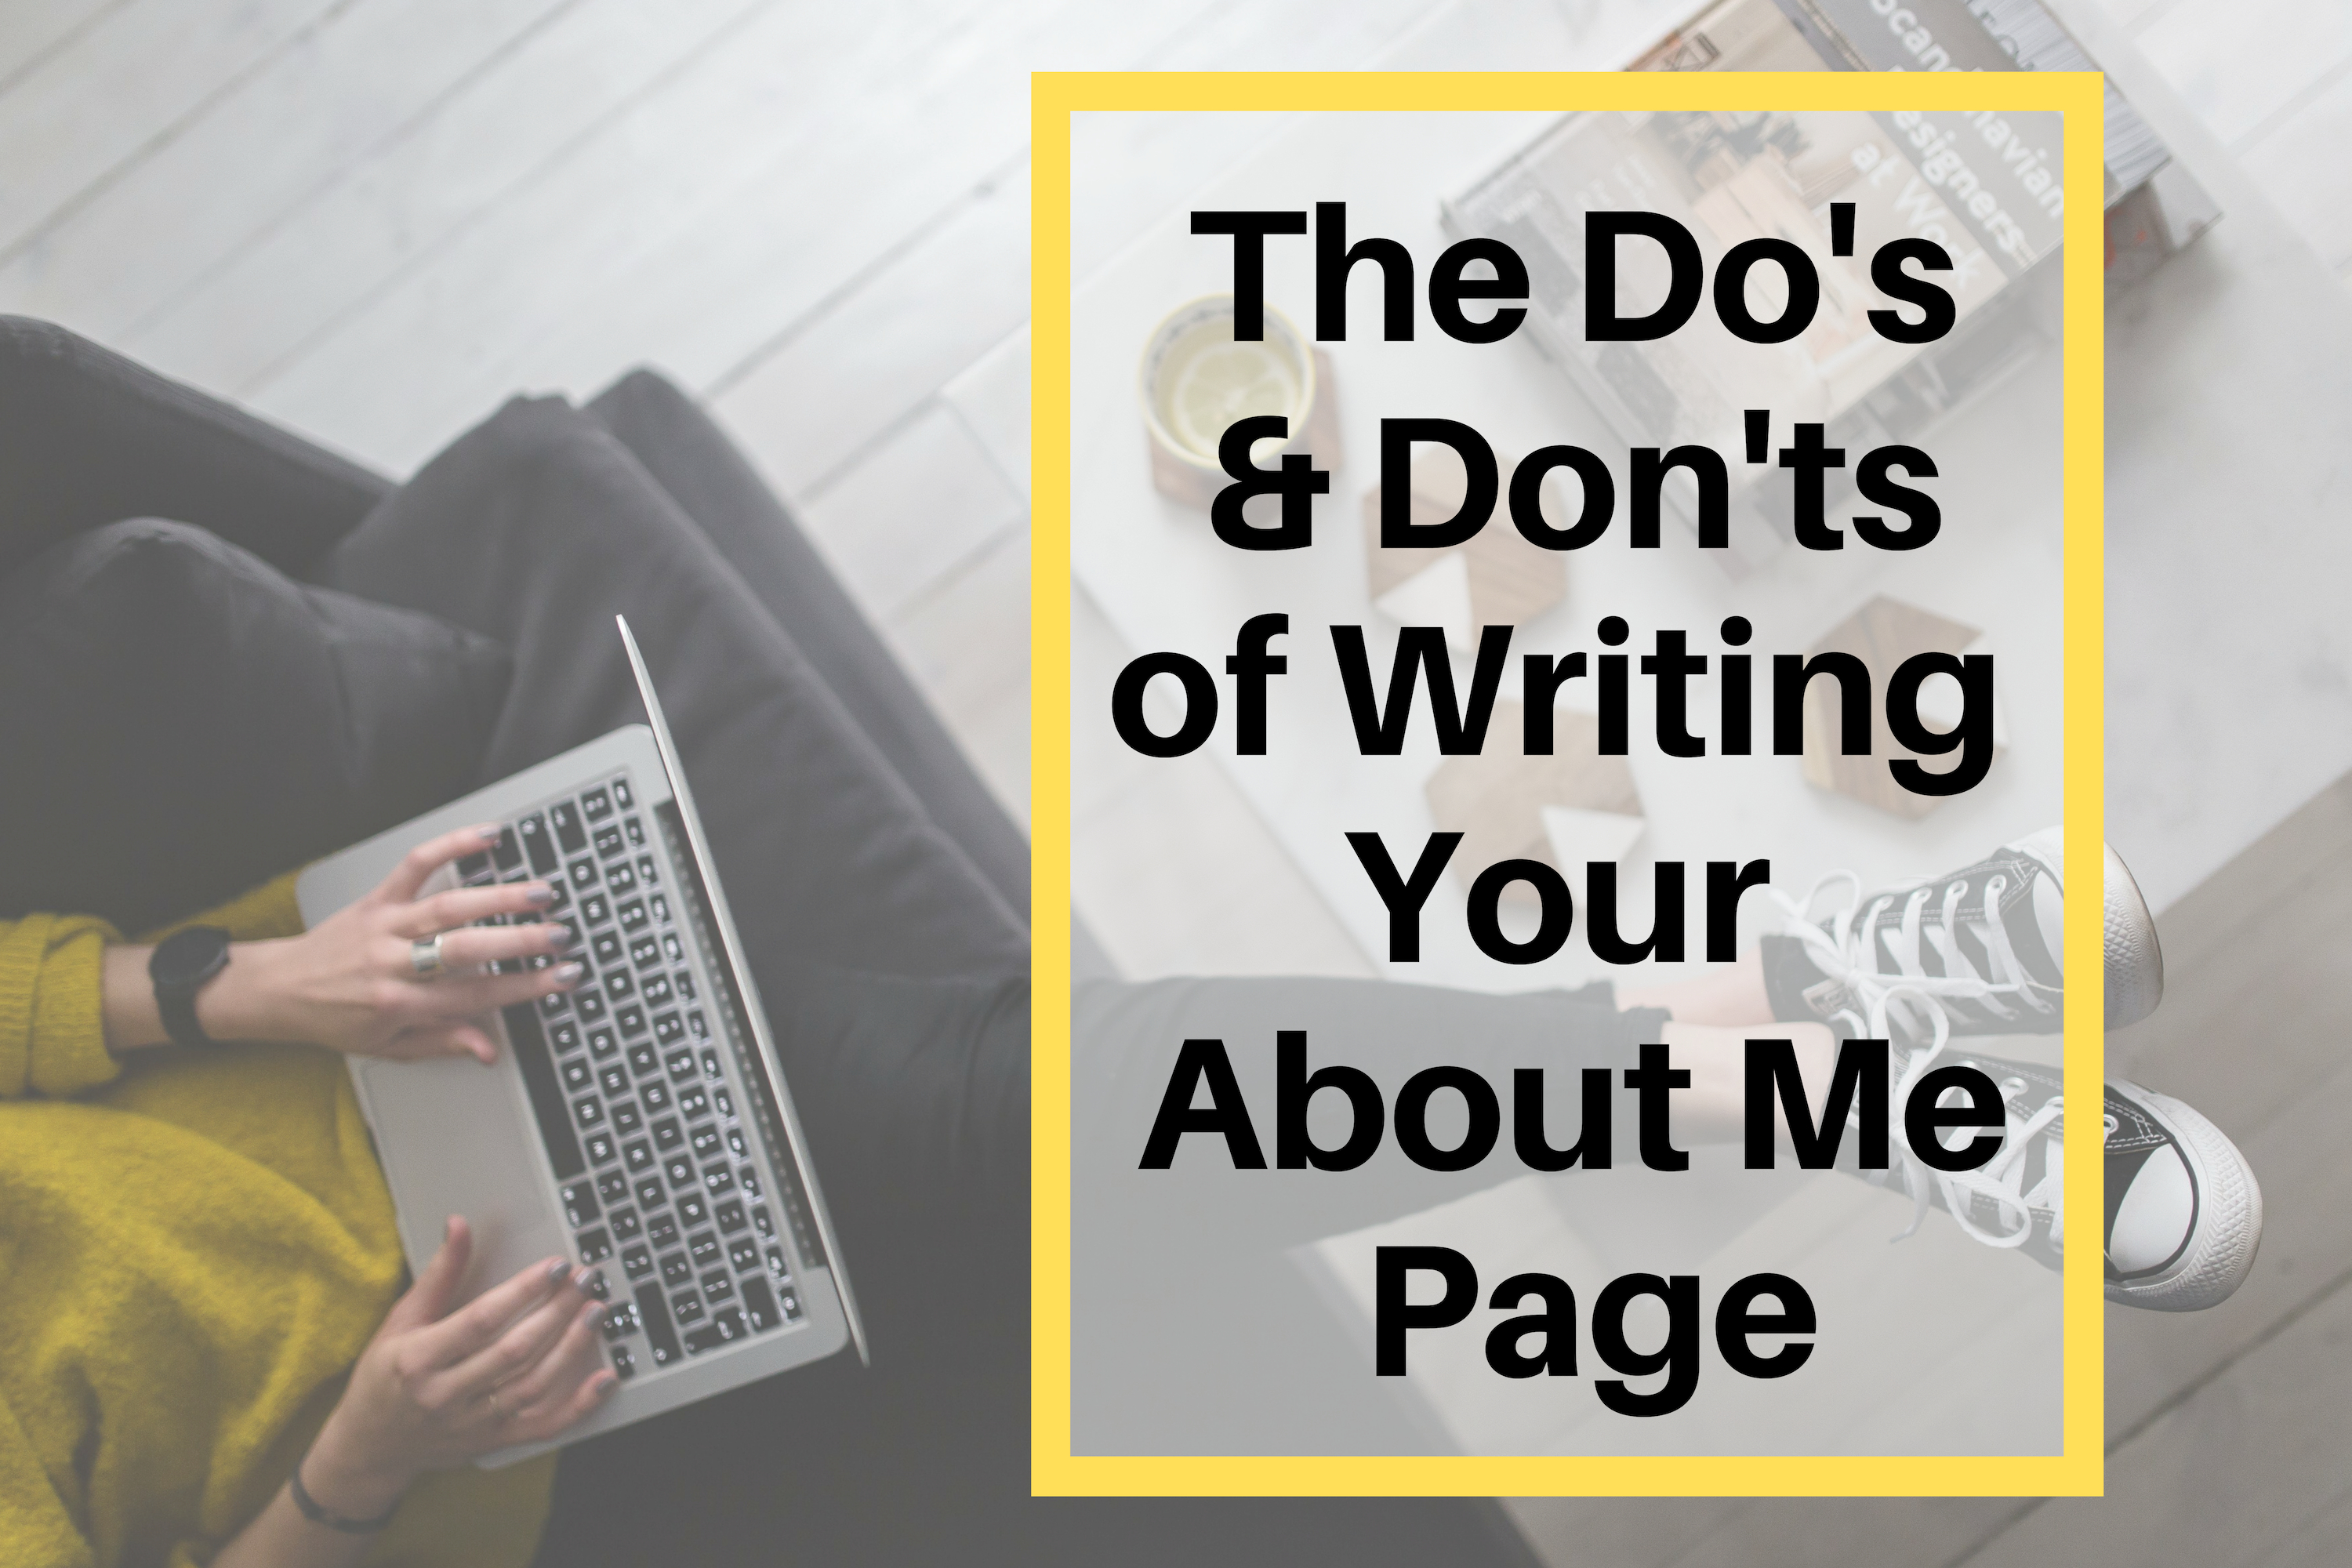 THE DOS AND DON'TS OF WRITING YOUR ABOUT ME PAGE (WITH FREE WORKSHEETS)